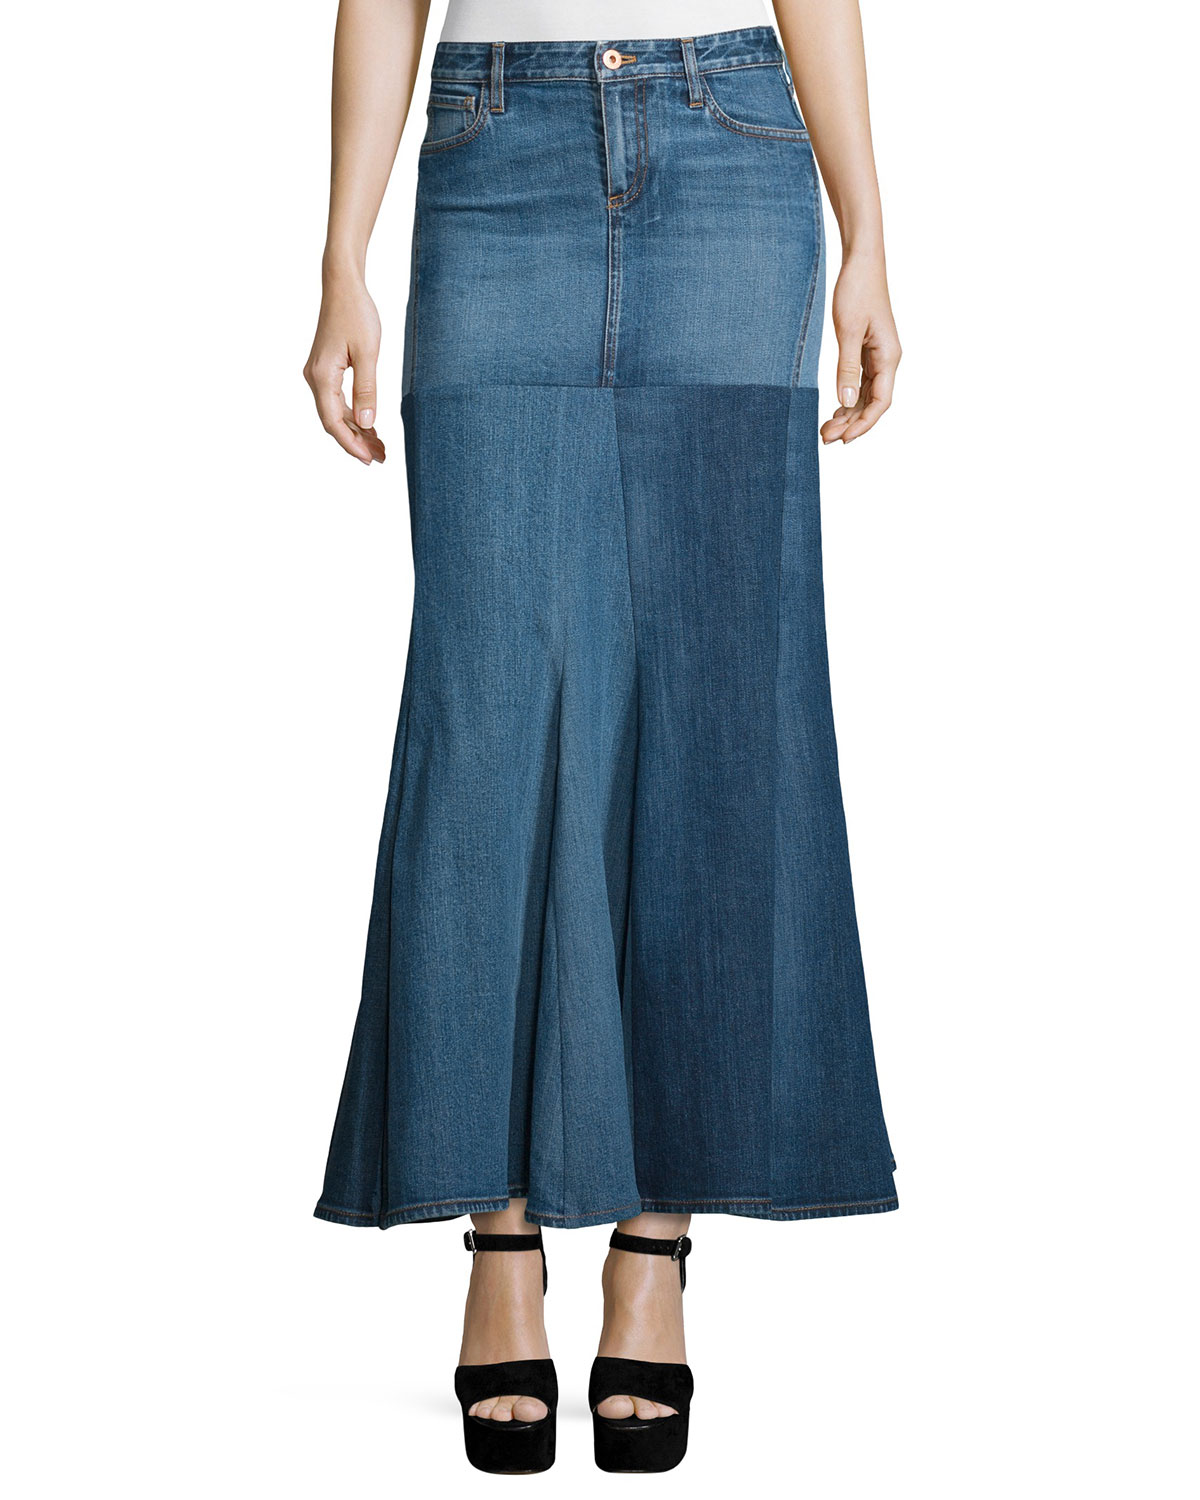 d6d42cc7aa174 Roberto Cavalli Five-Pocket Denim Godet Maxi Skirt, Washed Indigo ...